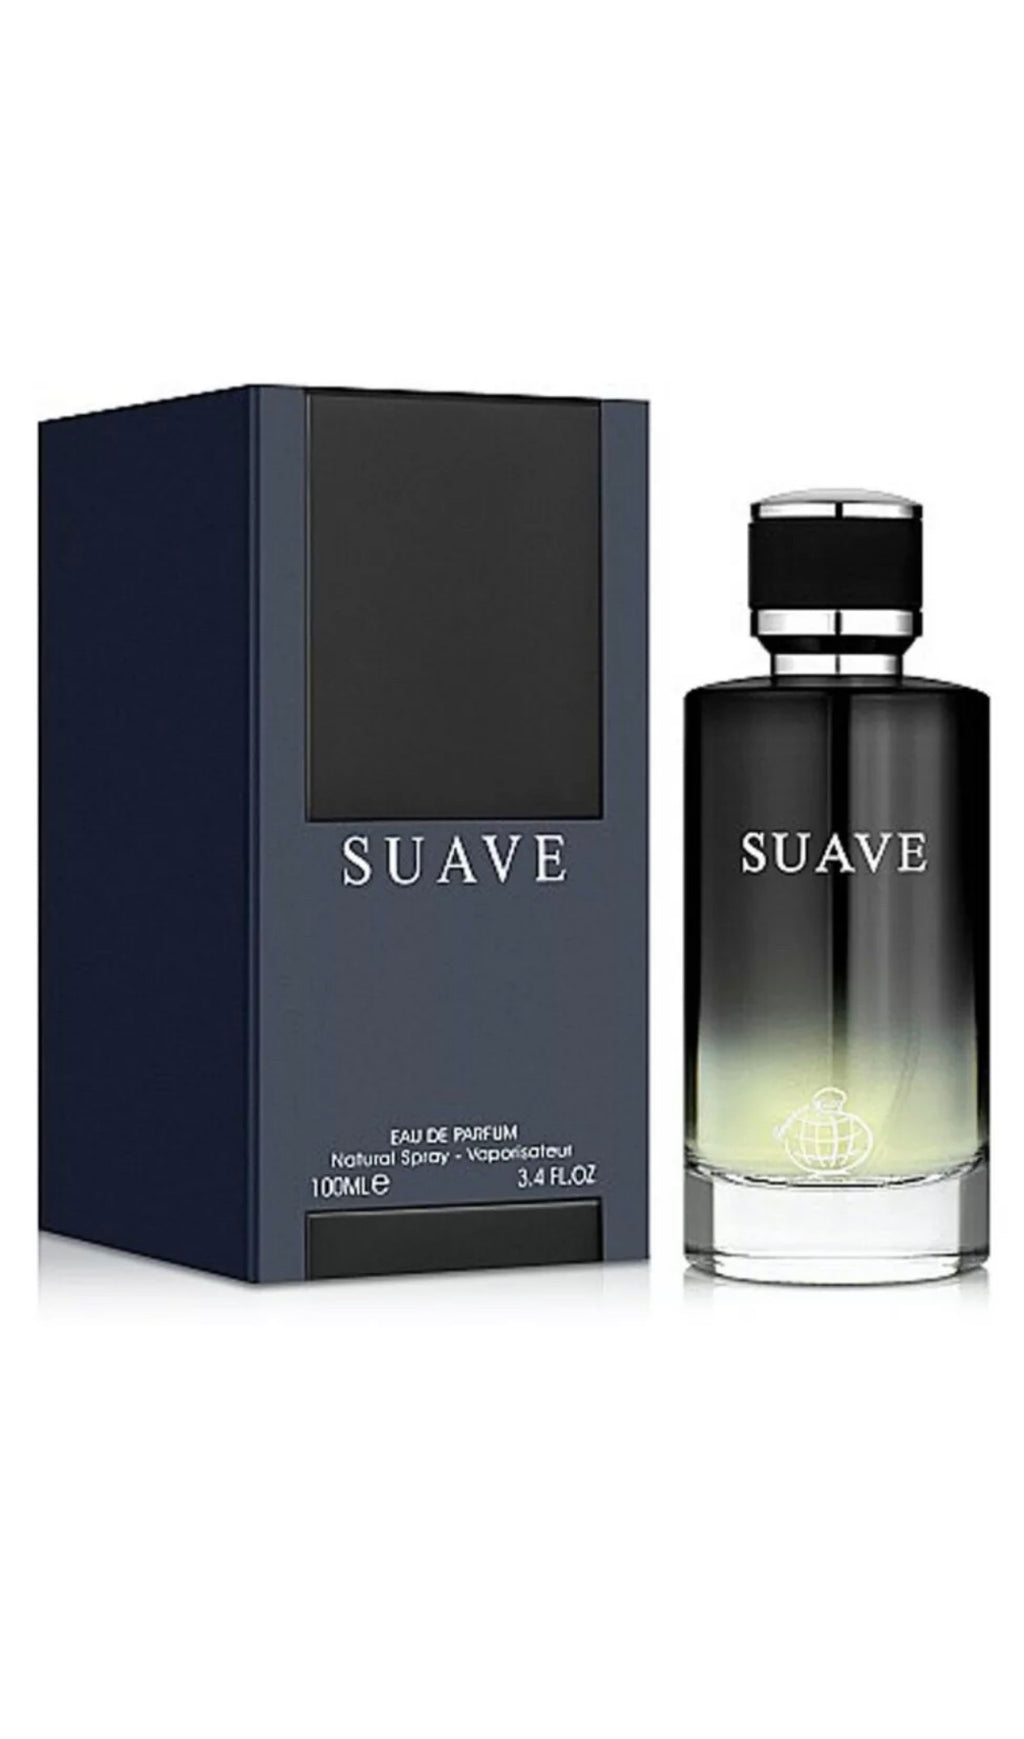 Suave by Fragrance World